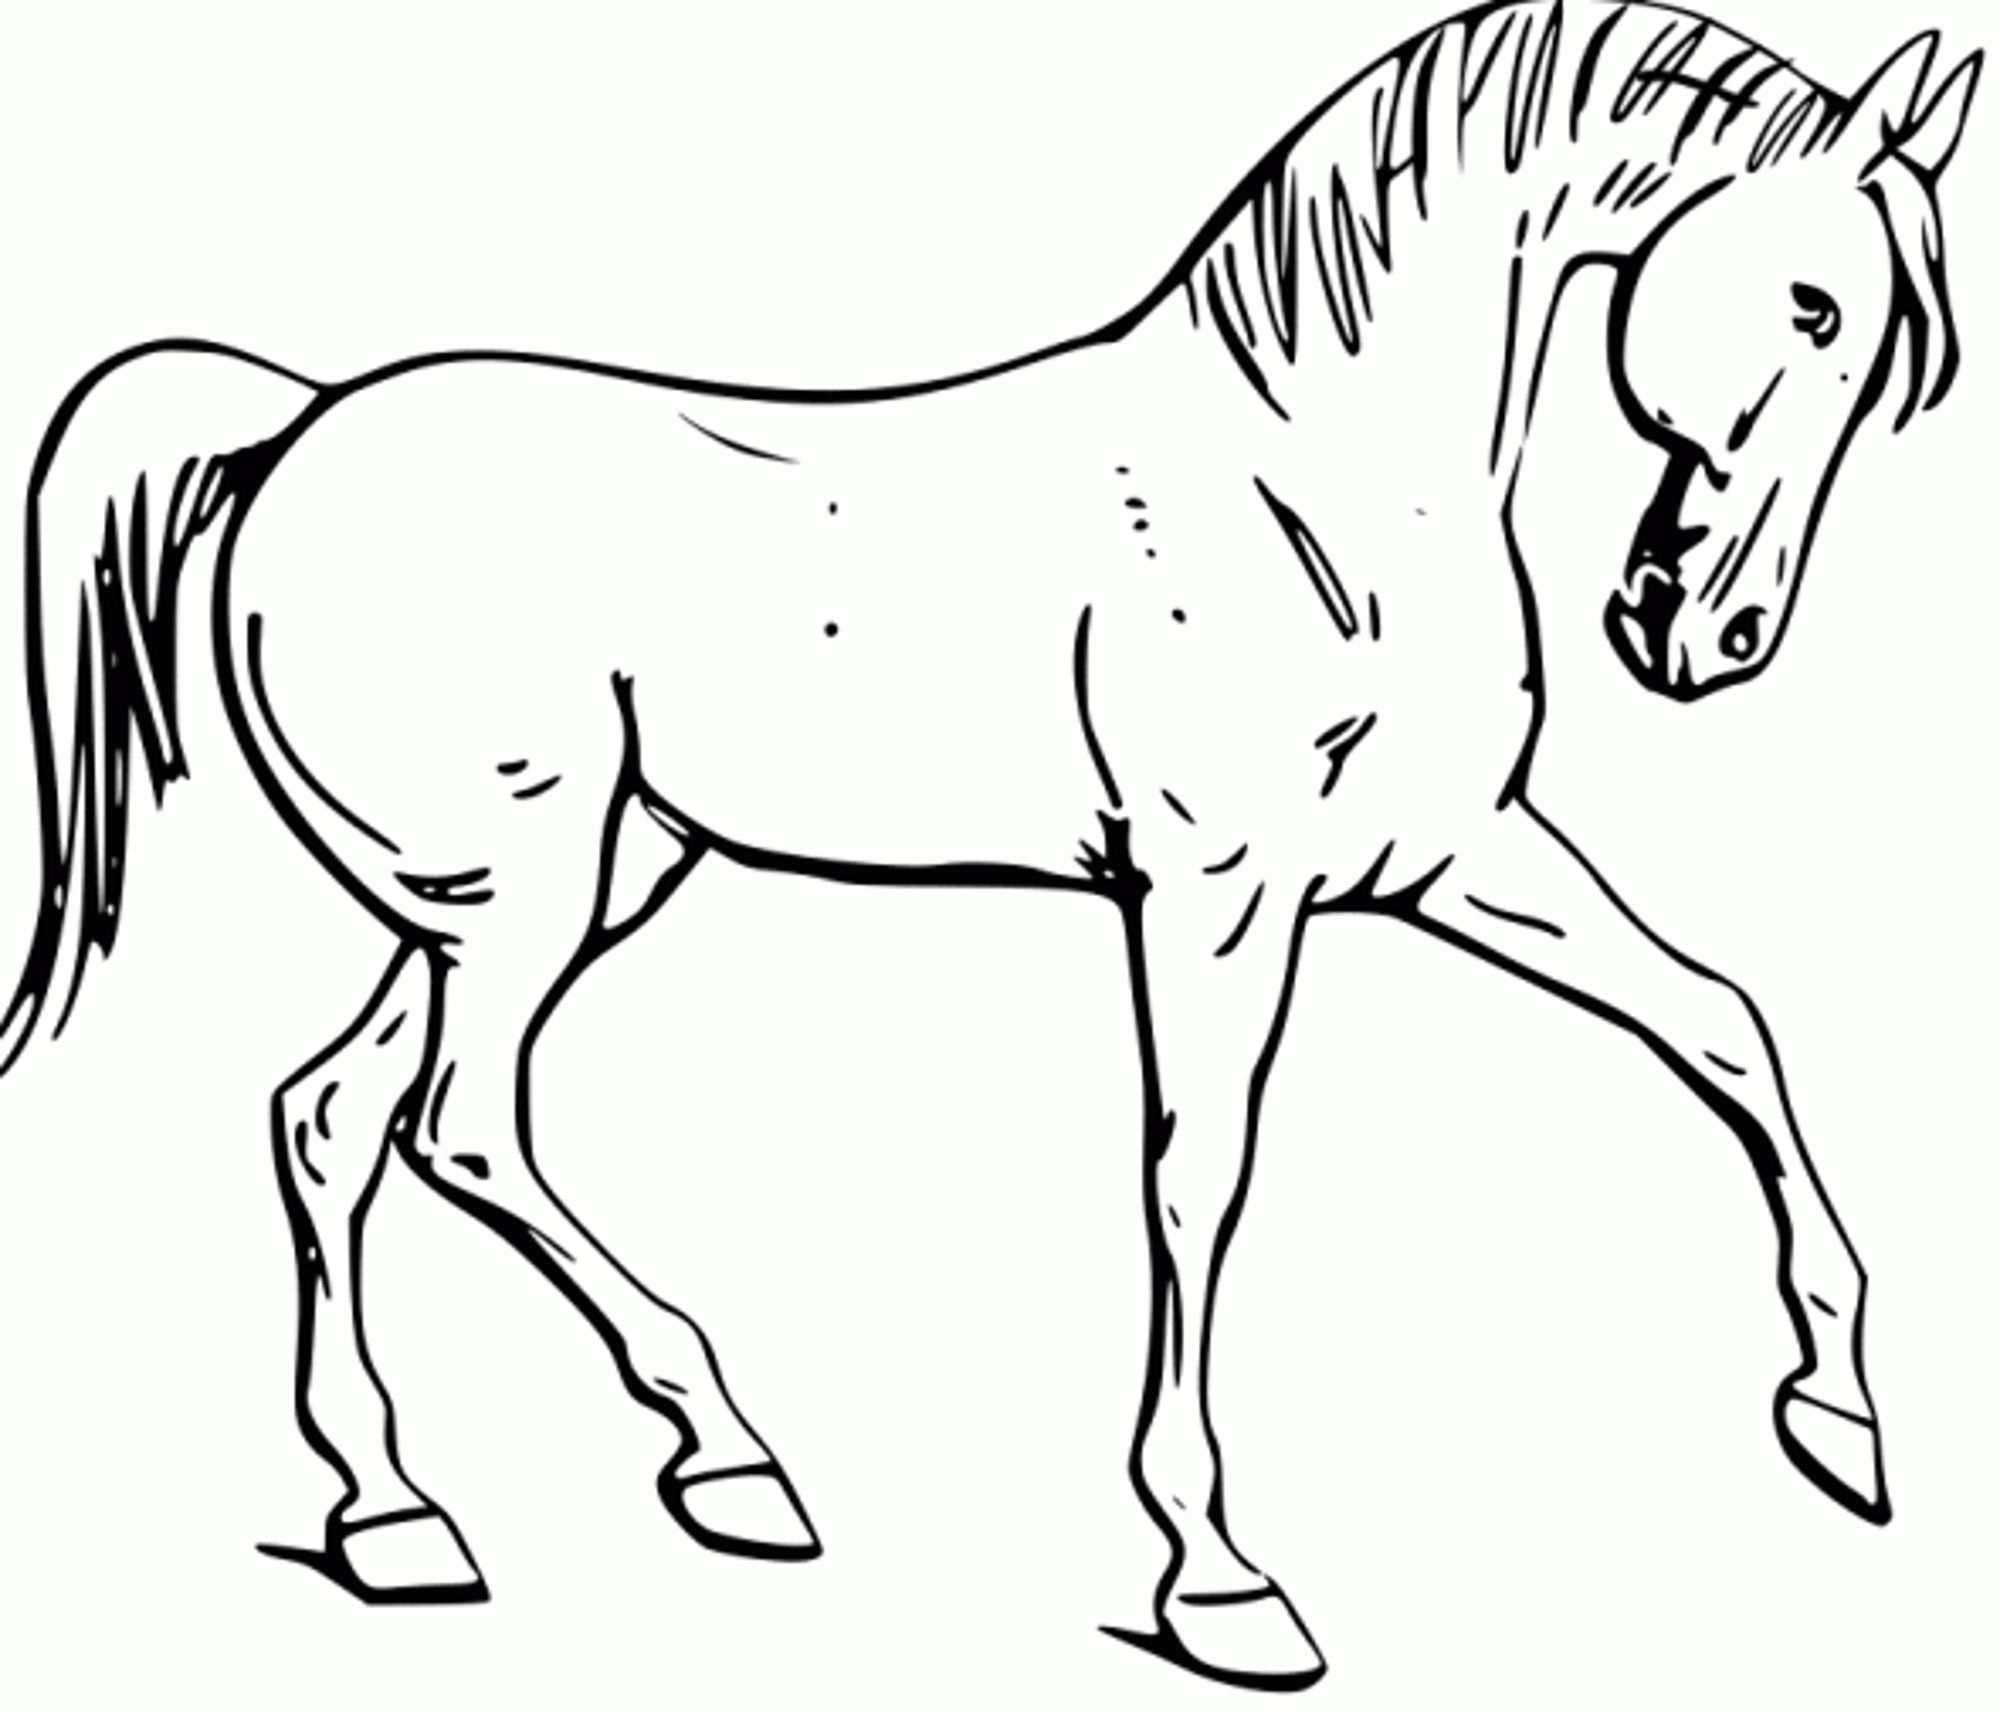 Free Horse Coloring Pages Fun Horse Coloring Pages For Your Kids Printable